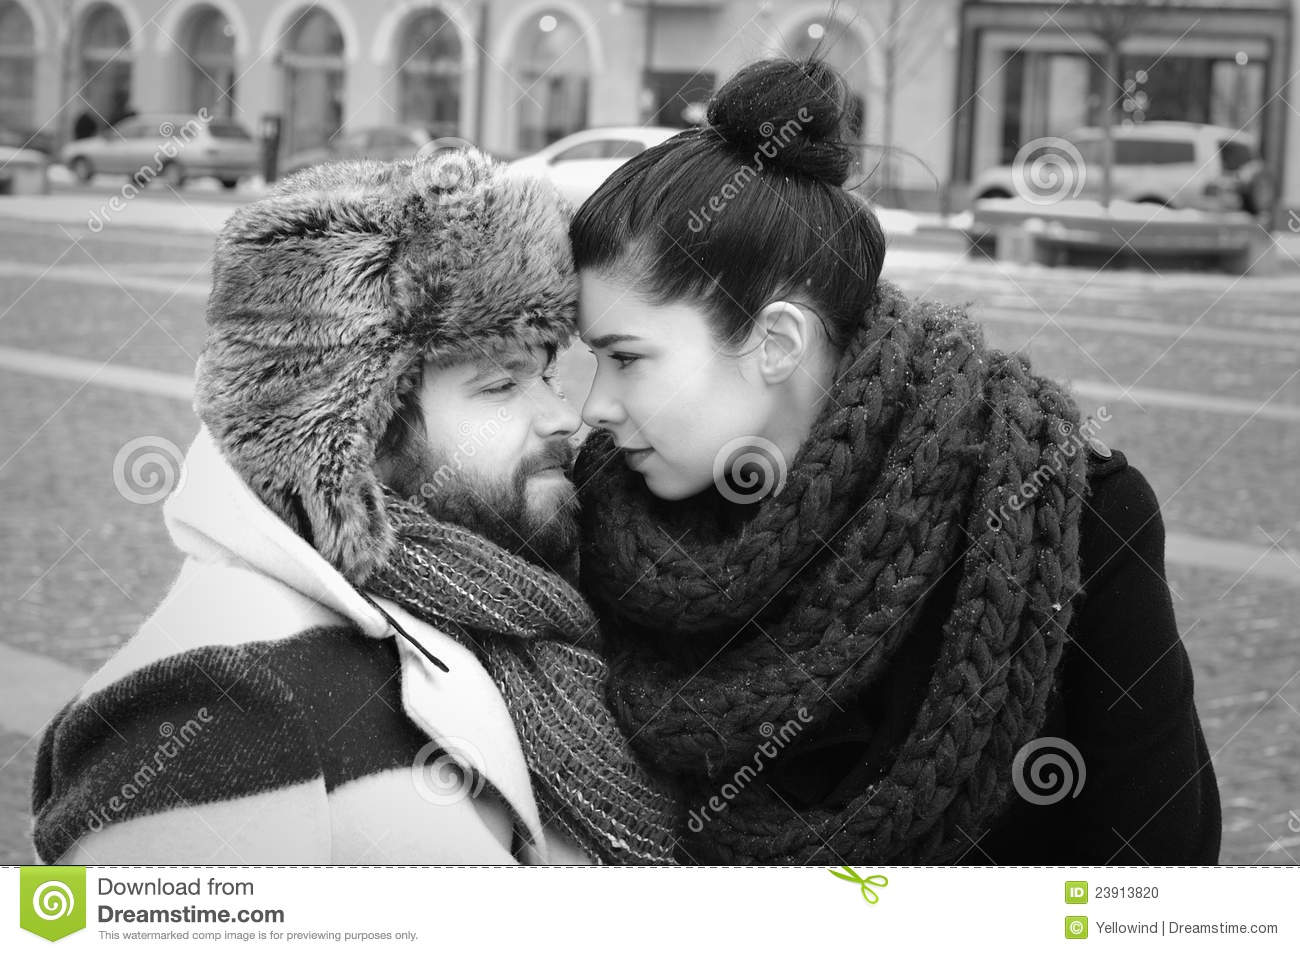 A Couple In Retro Style Nose Kiss Stock Photo - Image of